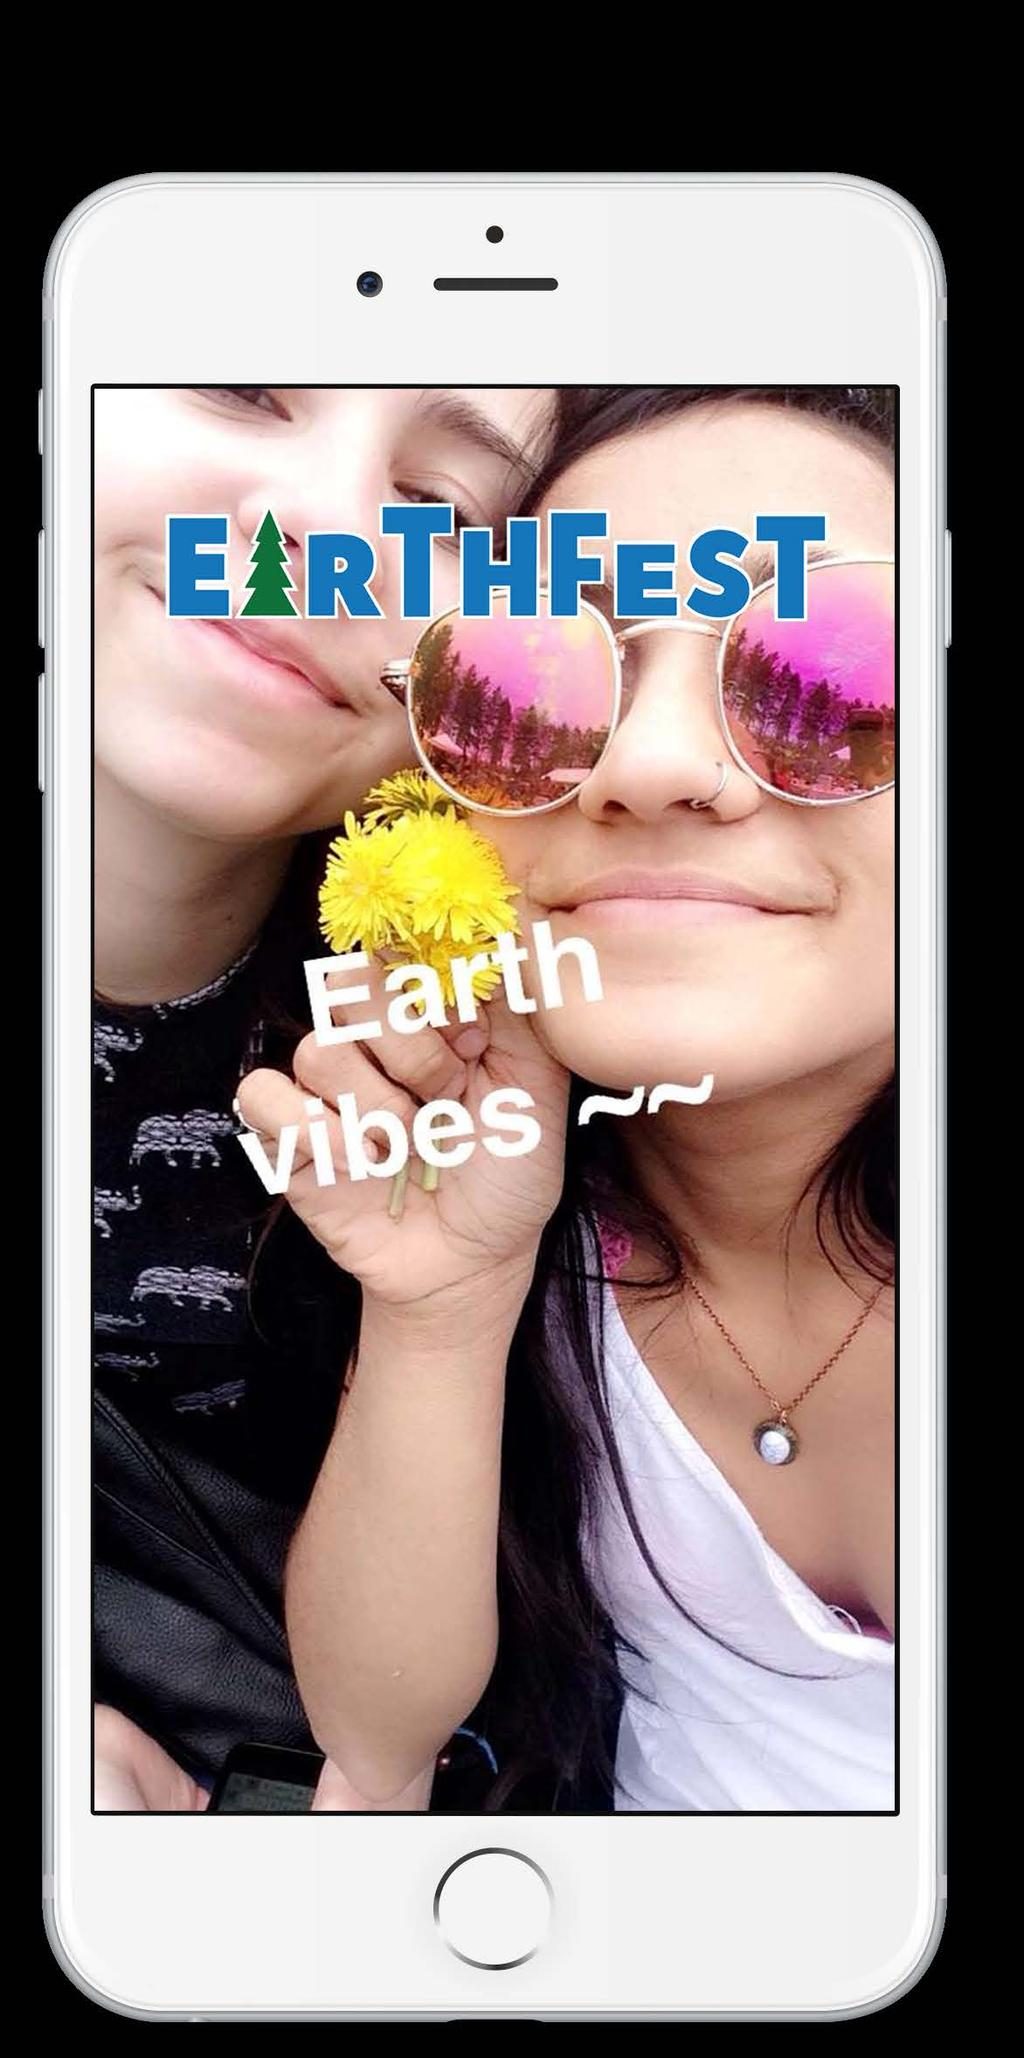 SNAPCHAT GEOFILTERS As a member of the marketing team for Students of Sustainability